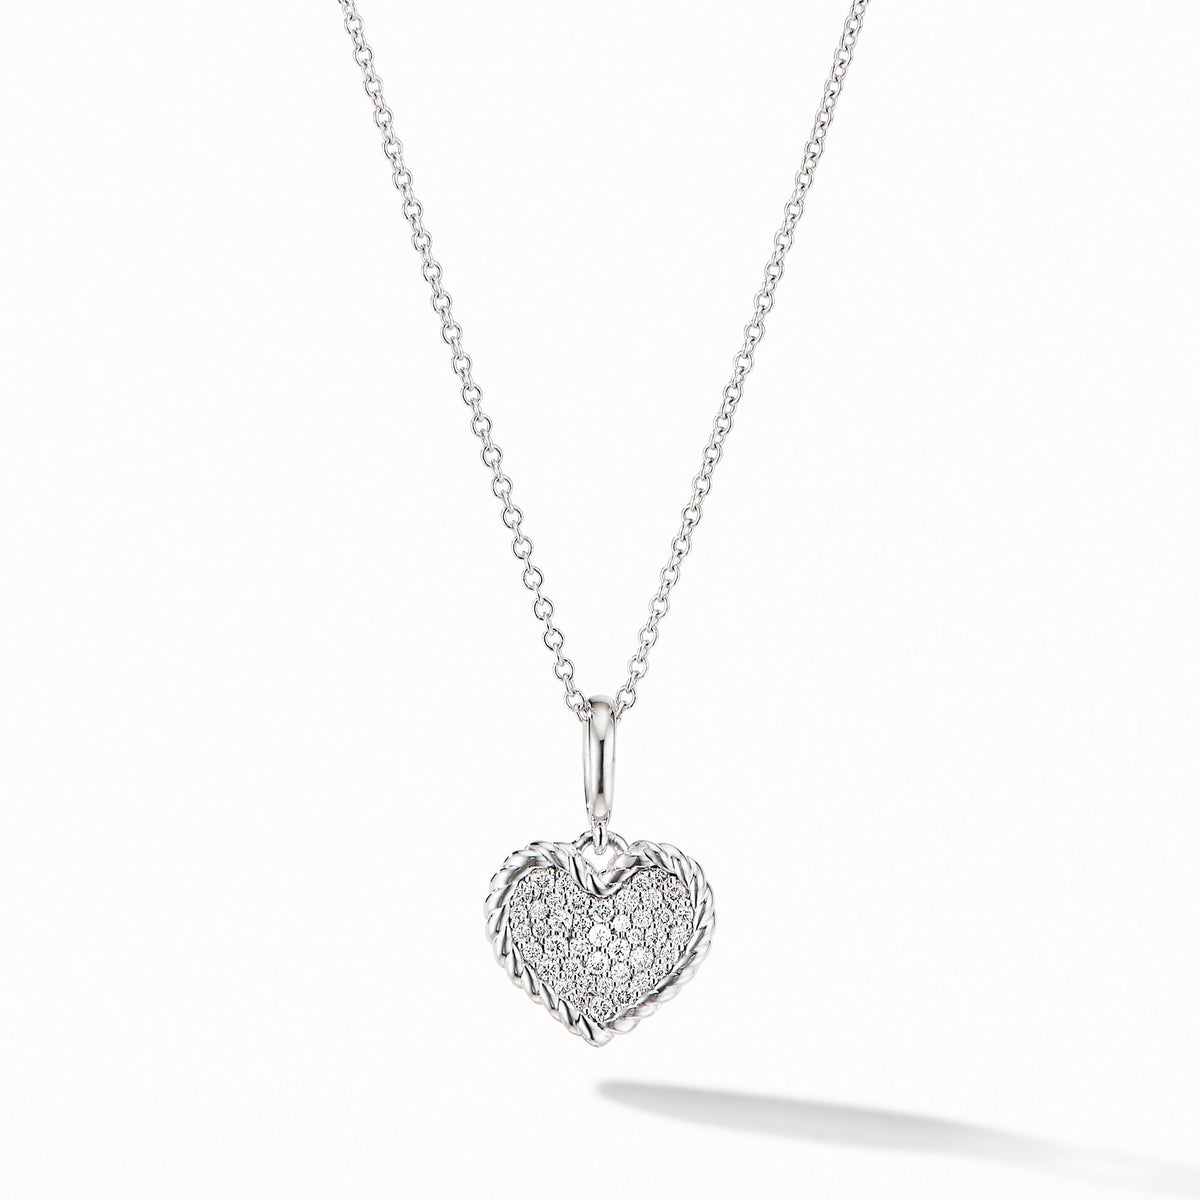 Cable Collectibles Pav預late Heart Charm Necklace in 18K White Gold